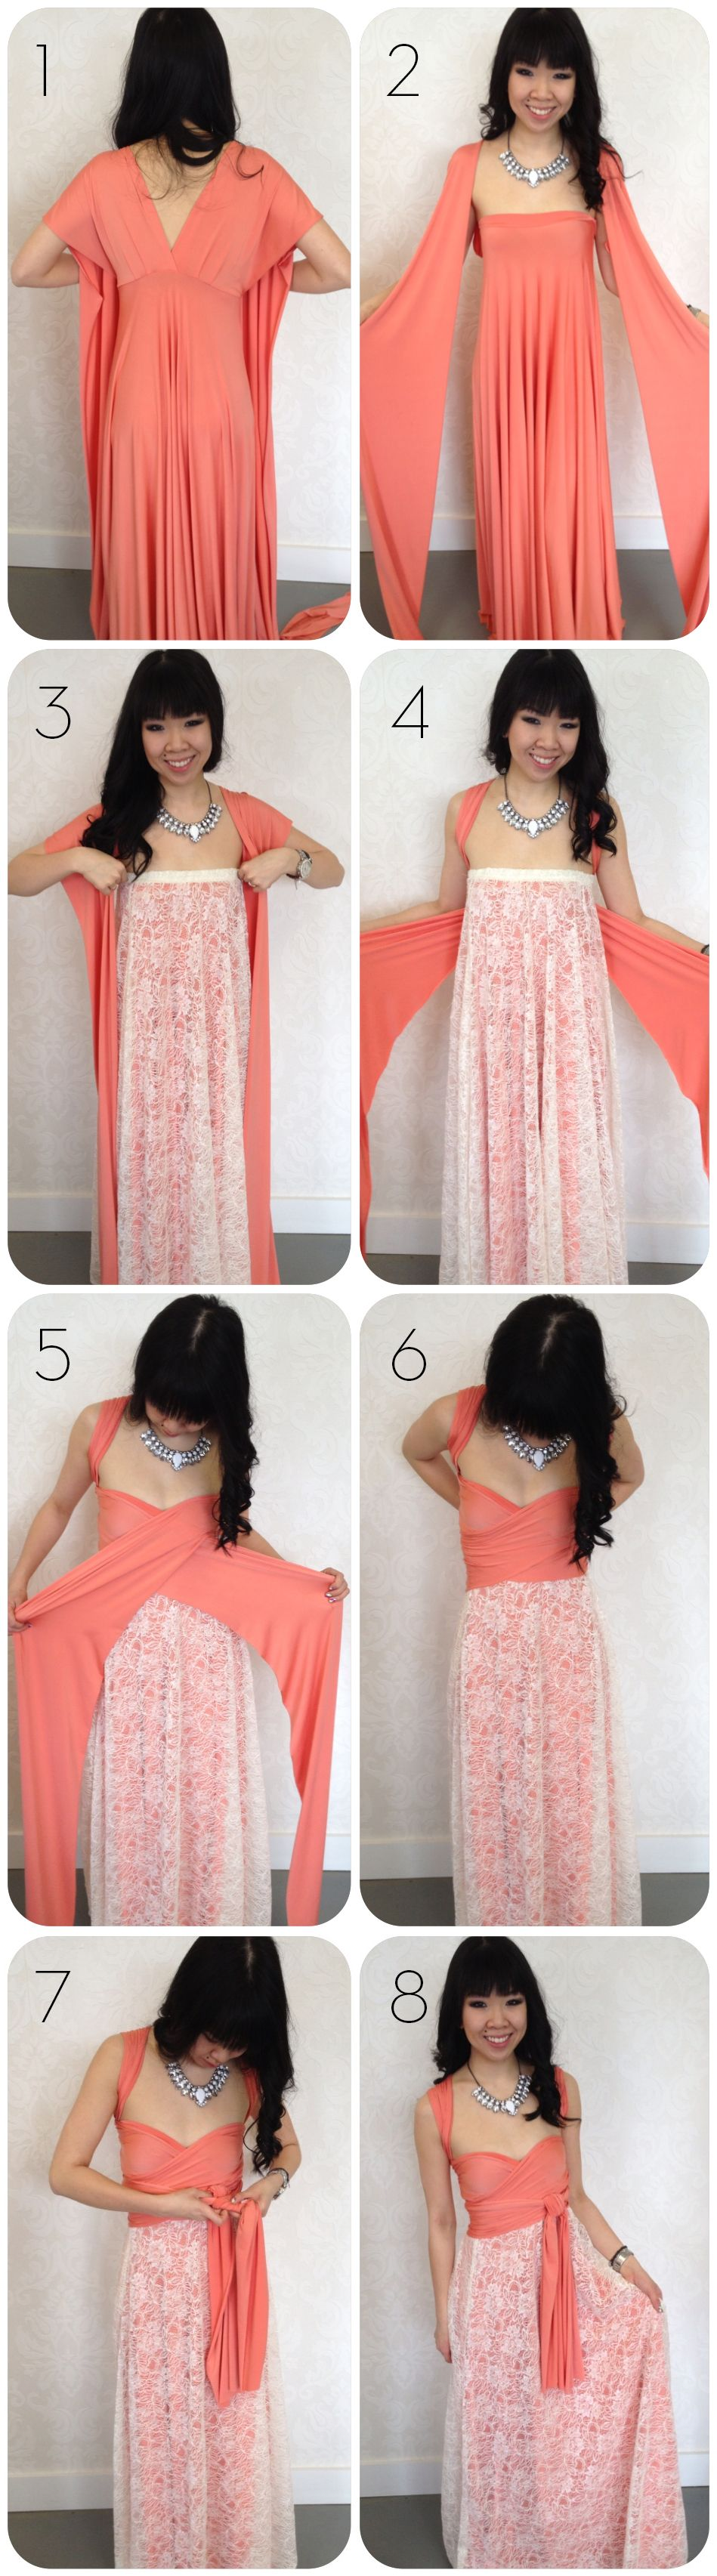 how to add lace to a convertible dress | Costura, Ropa y Vestiditos